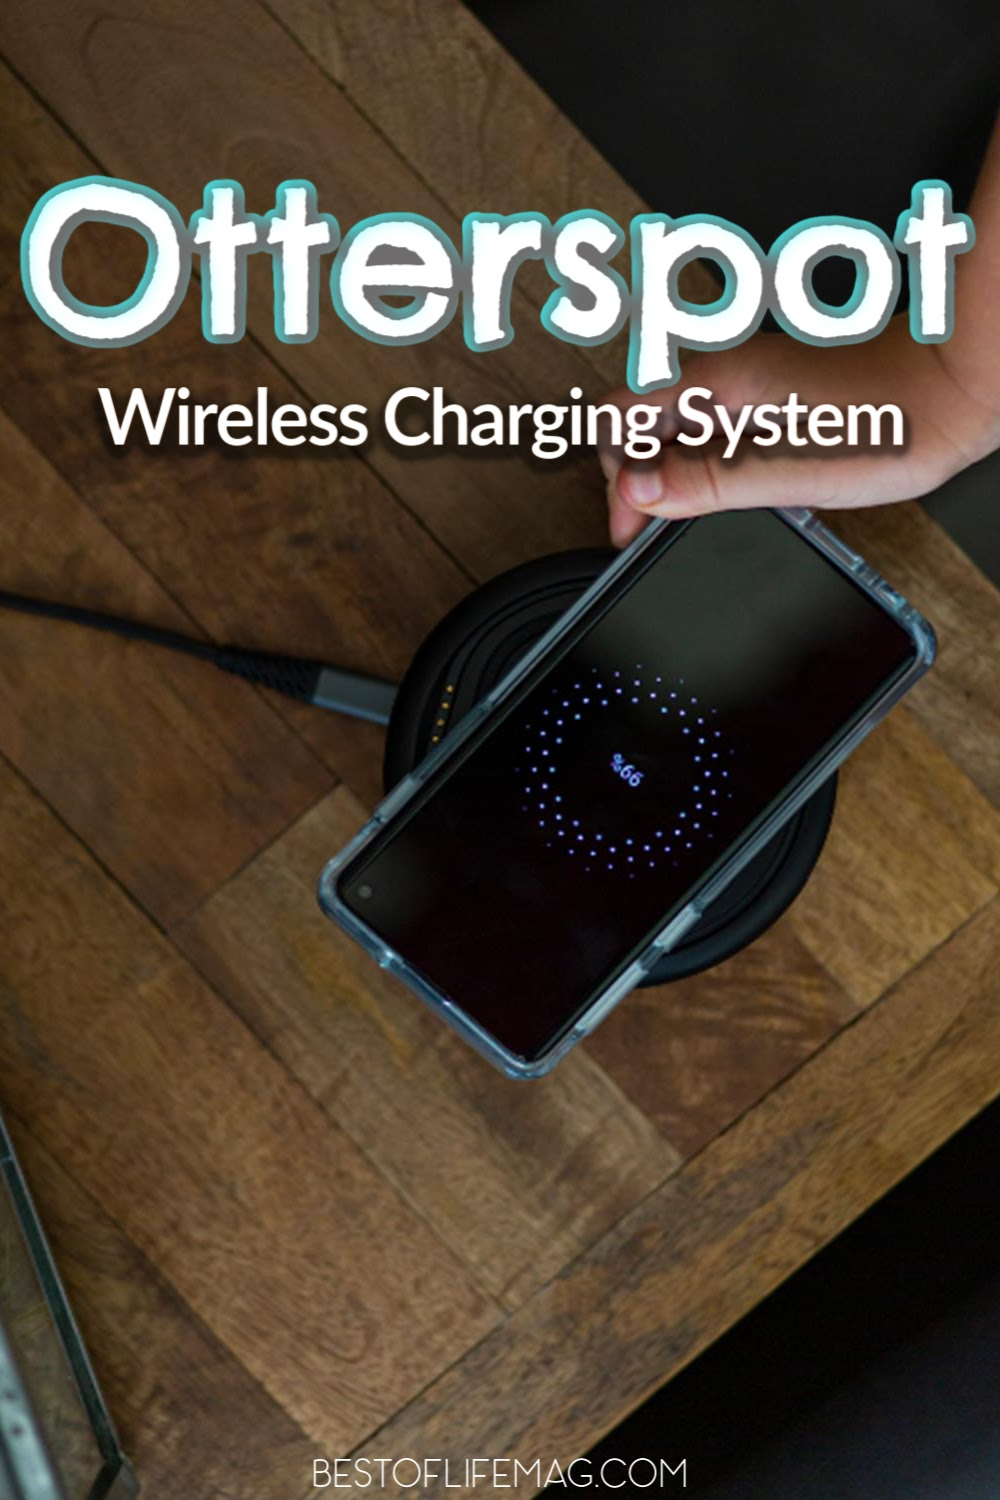 The Otterspot Wireless Charging System is all about wireless charging features for your smartphone to help you keep up with a tech-savvy life. Wireless Charging | iPhone Accessories | Otterbox Products | Otterspot Review | Tips for Technology | Tech Tips | Work from Home #otterbox #tech